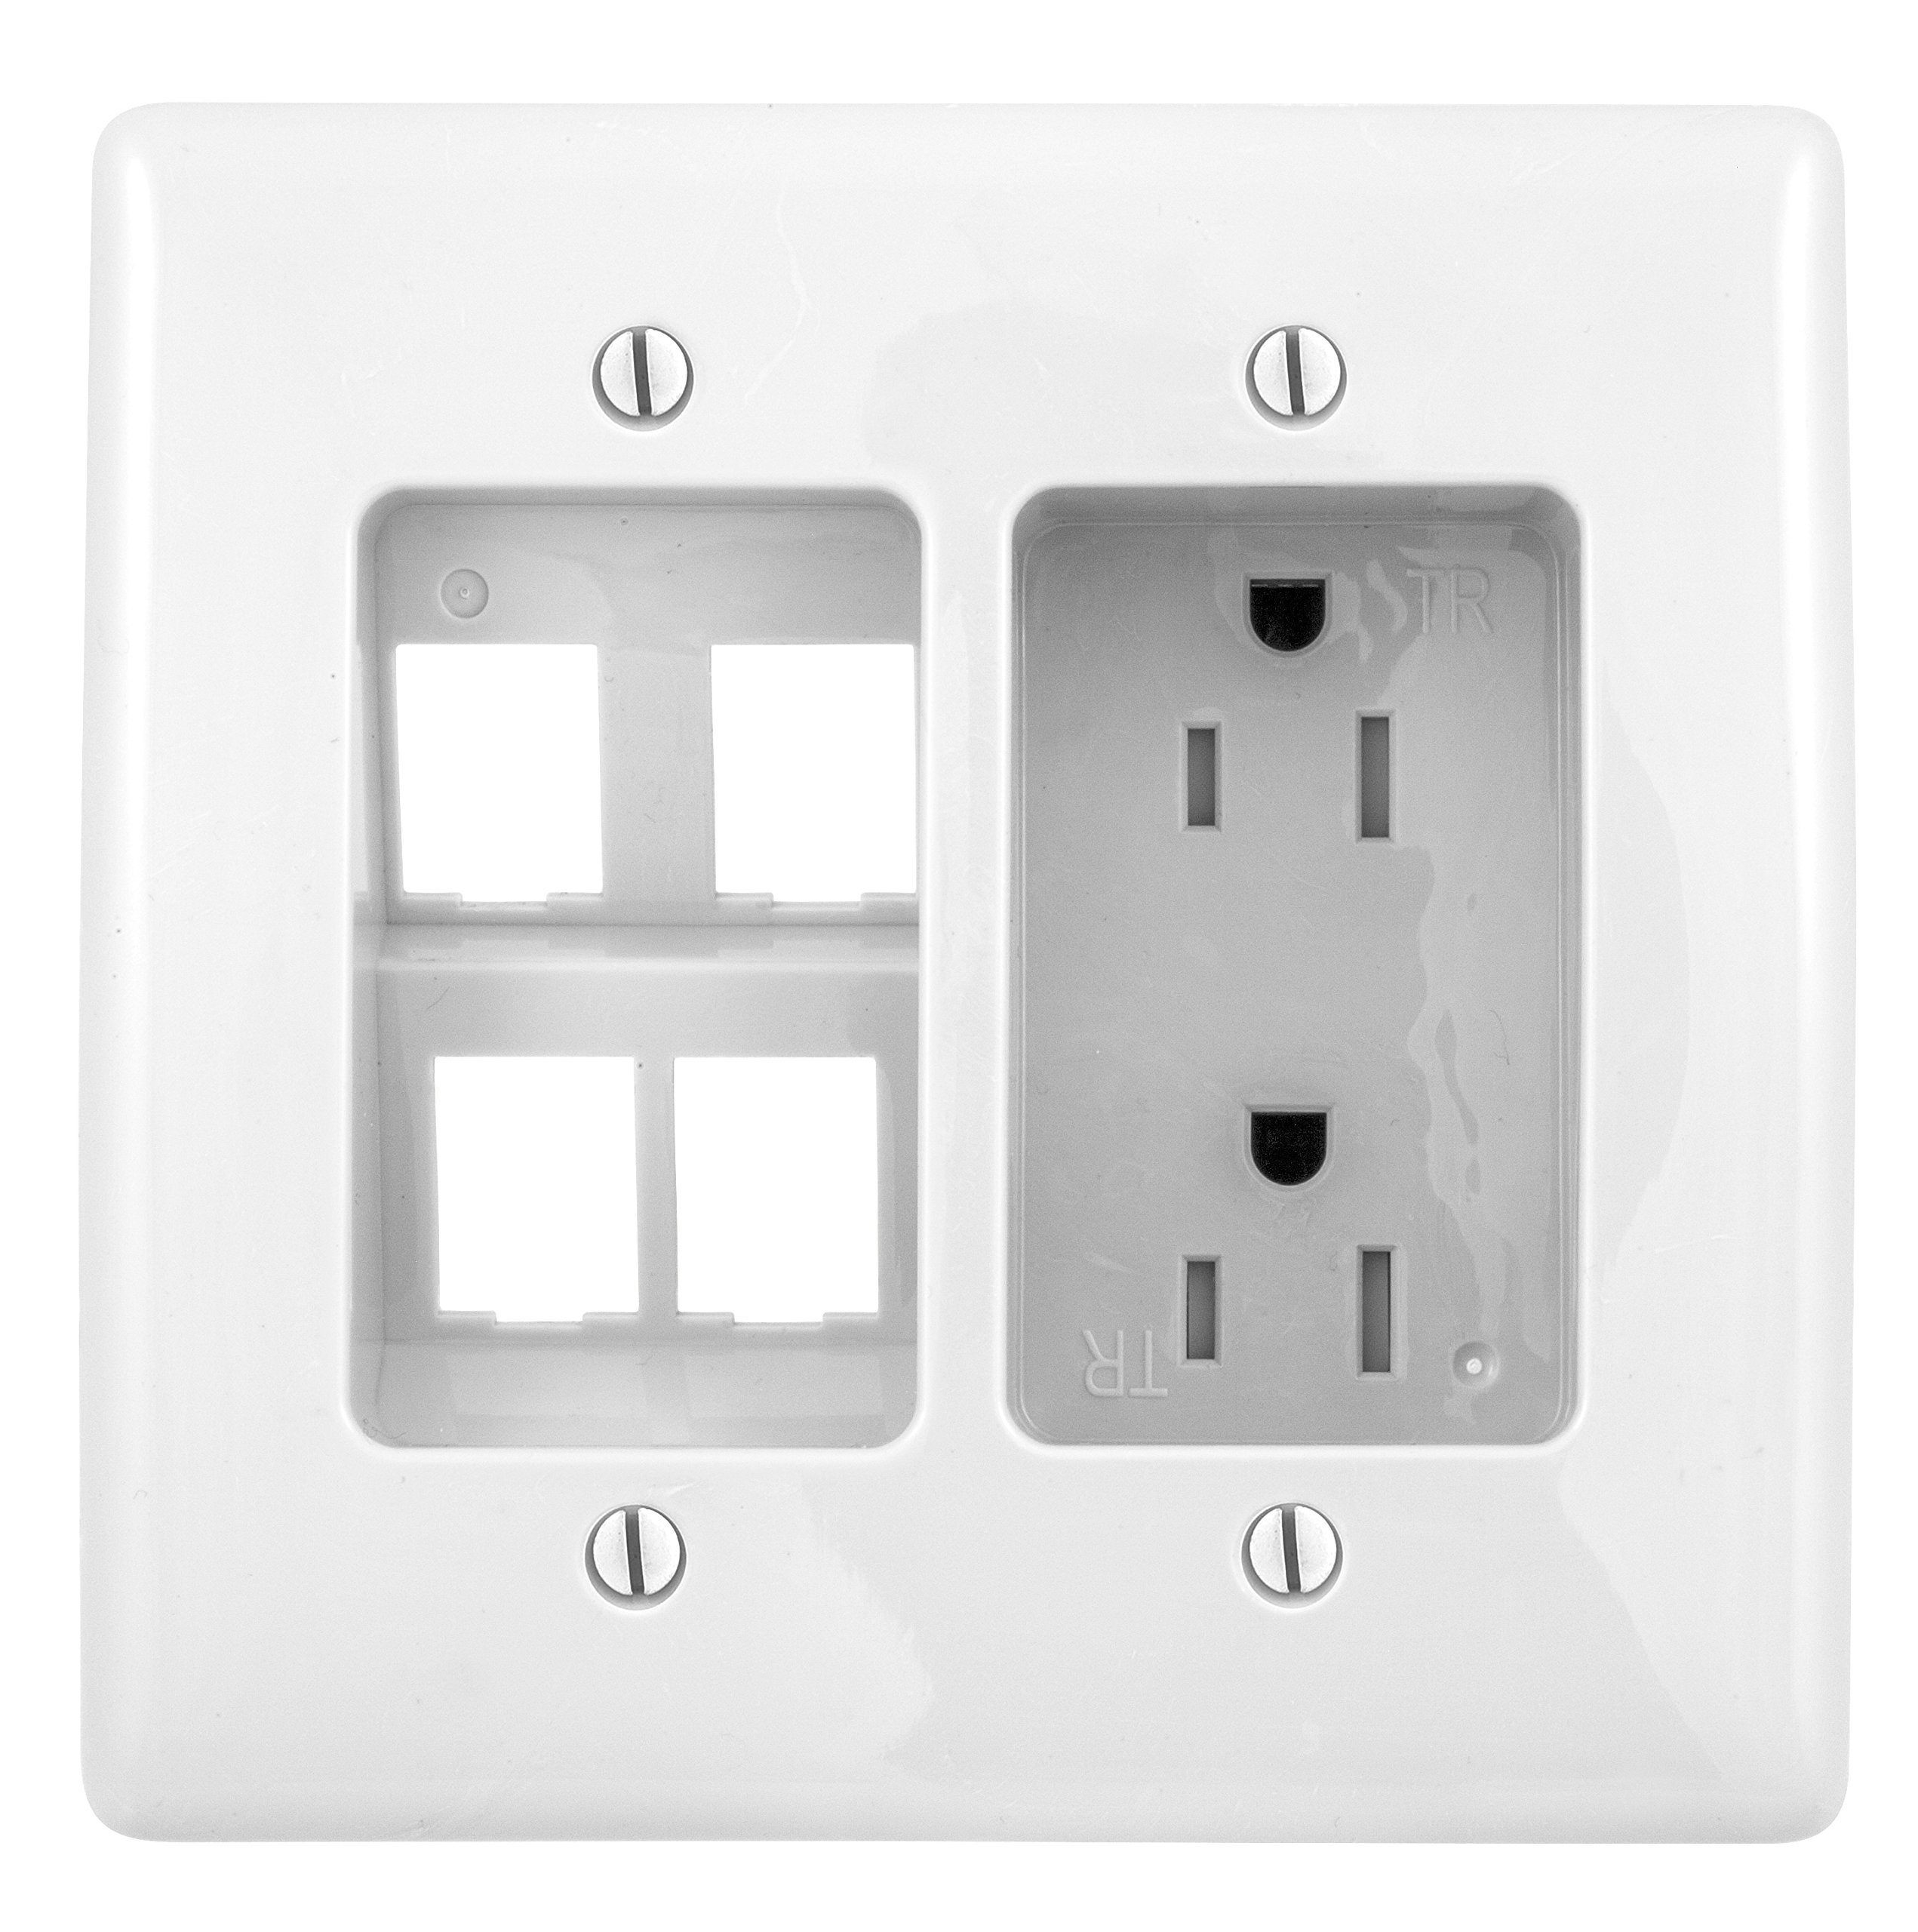 Best Rated In Standard Electrical Outlets Helpful Customer Reviews Datajack Wiring Bryant Electric Rr1514w 2 Gang Recessed Tv Connection Outlet Plate With 15 Amp 125v Tamper